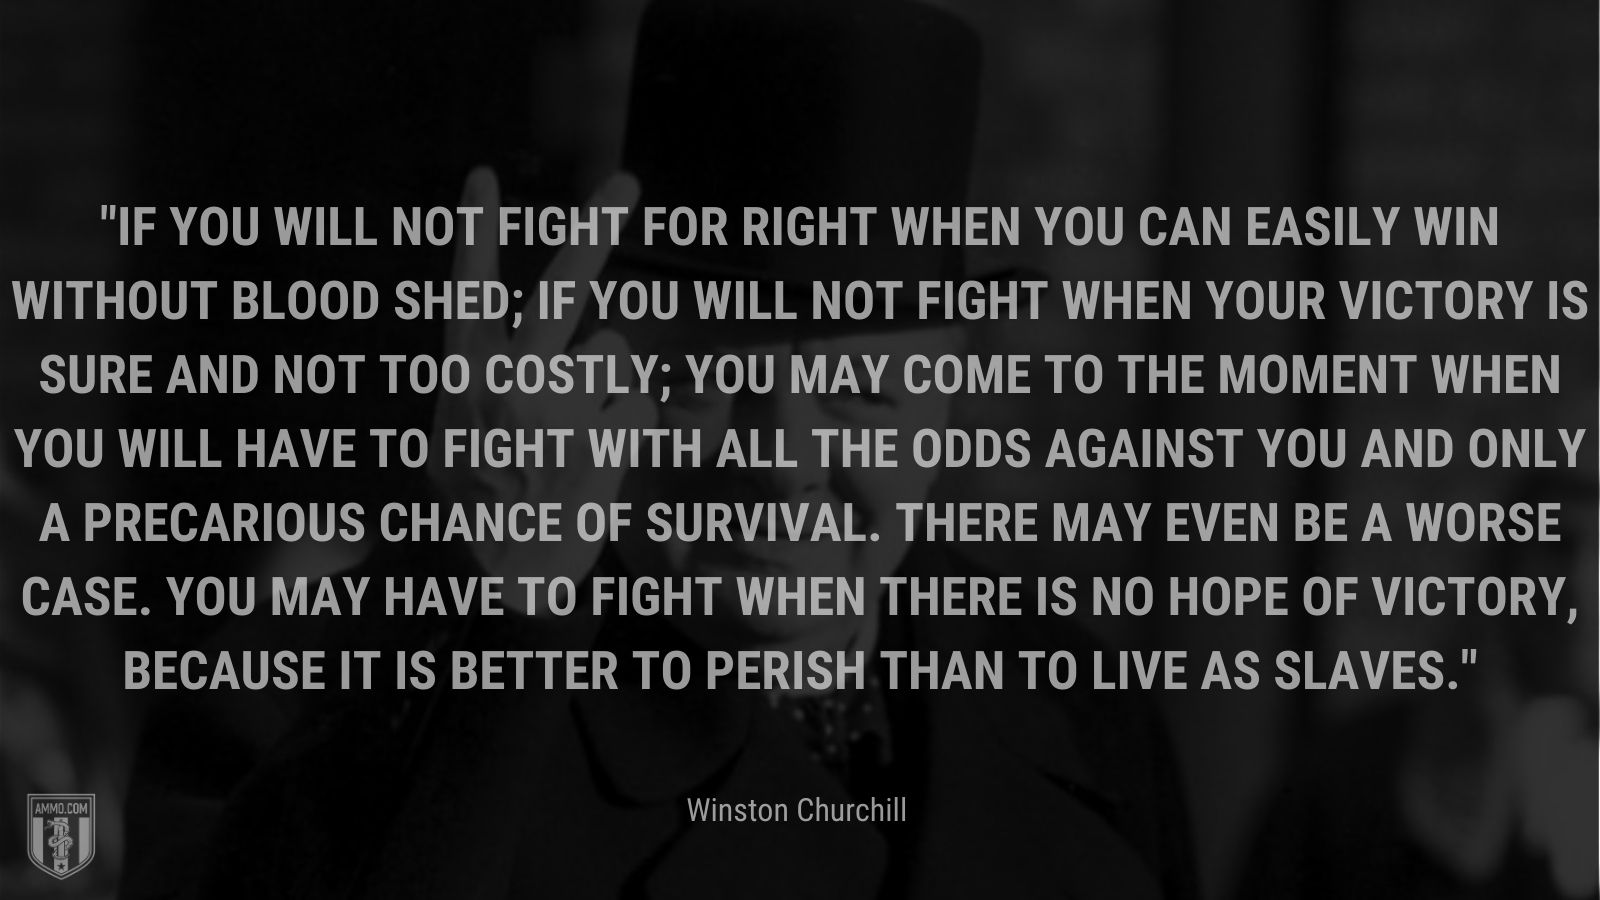 If you will not fight for right when you can easily win without blood shed; if you will not fight when your victory is sure and not too costly; you may come to the moment when you will have to fight with all the odds against you and only a precarious chance of survival. There may even be a worse case. You may have to fight when there is no hope of victory, because it is better to perish than to live as slaves.